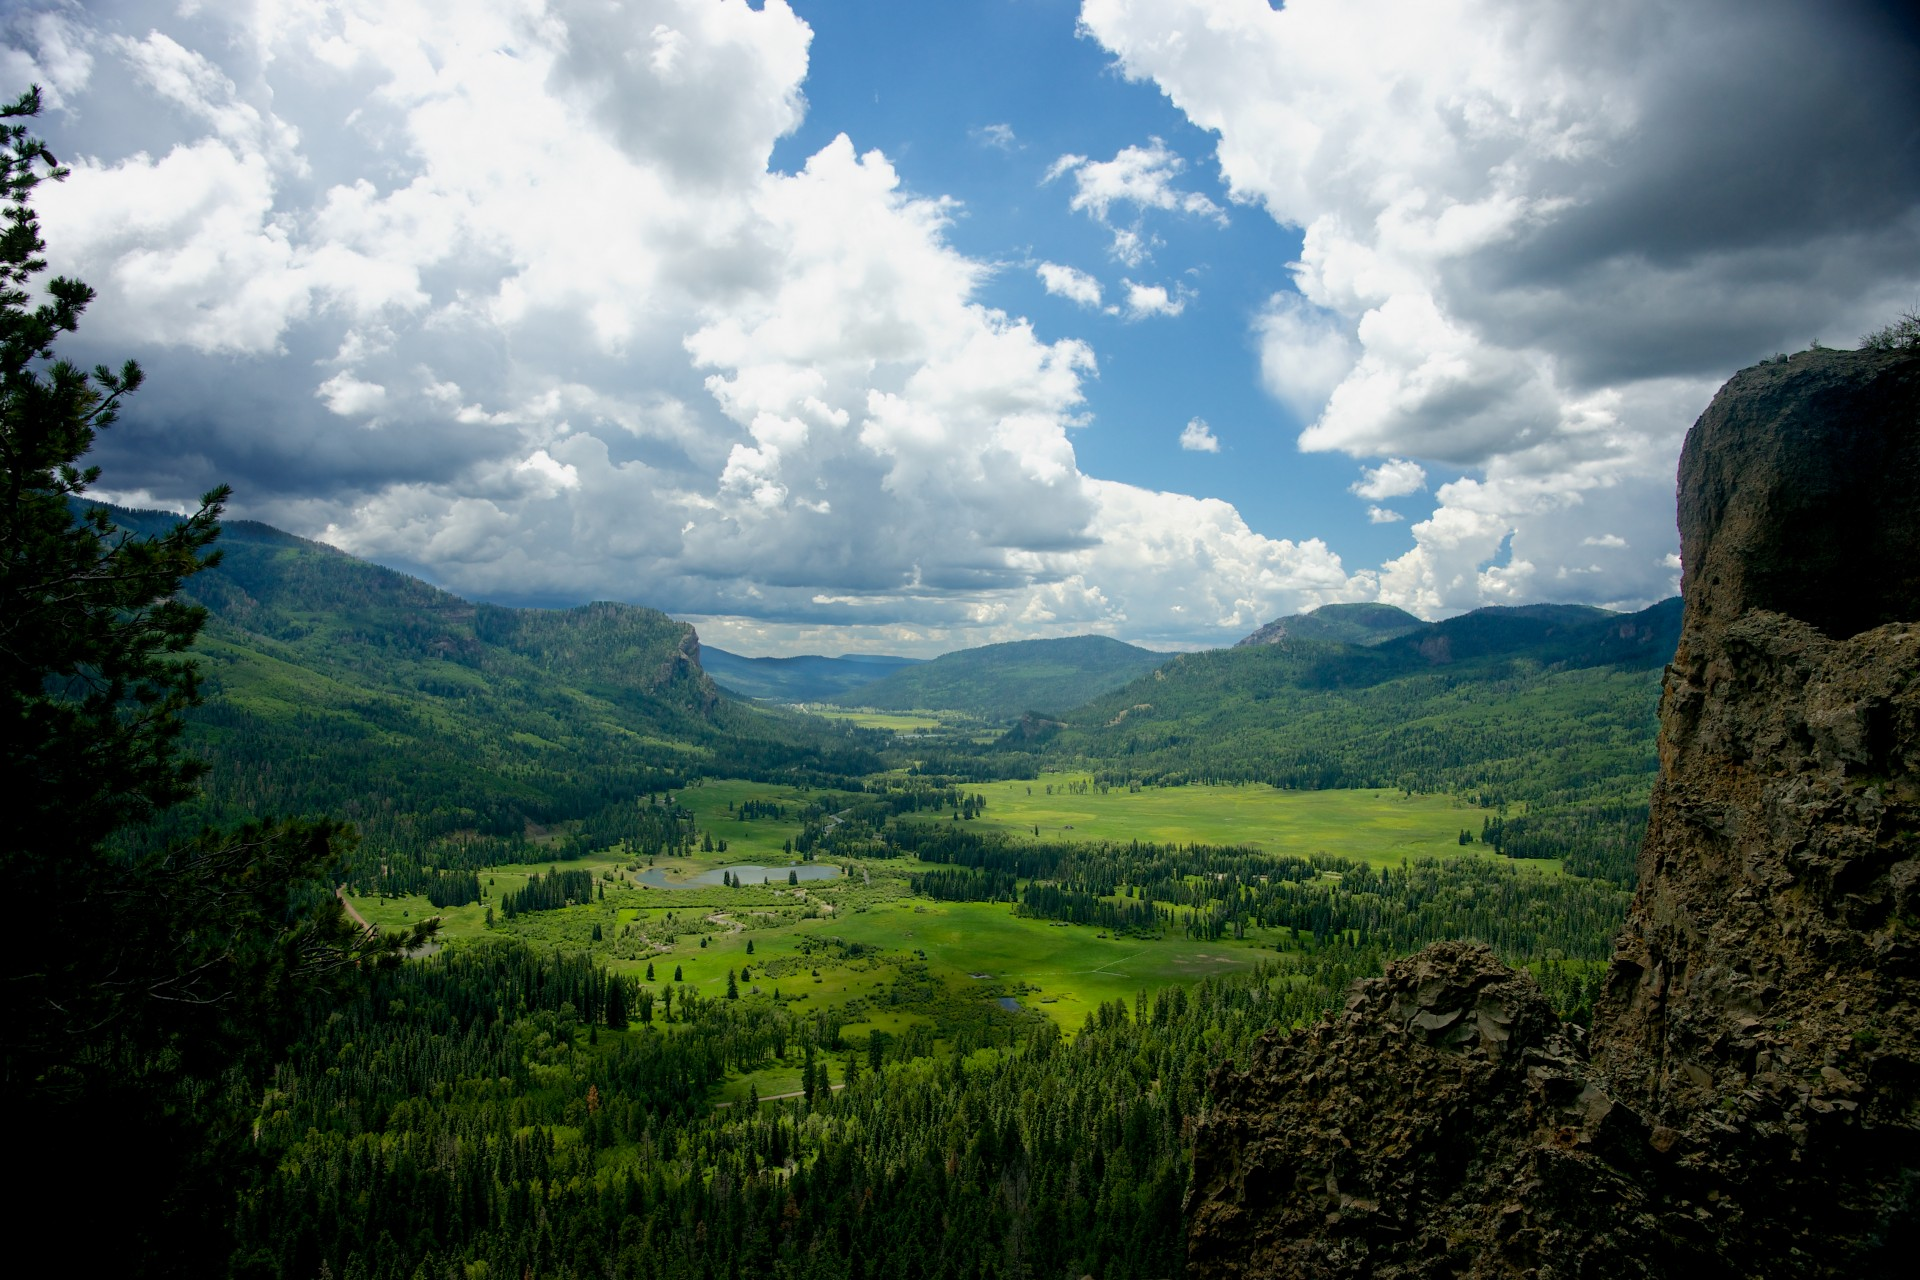 Green Mountain Valley Free Stock Photo - Public Domain Pictures